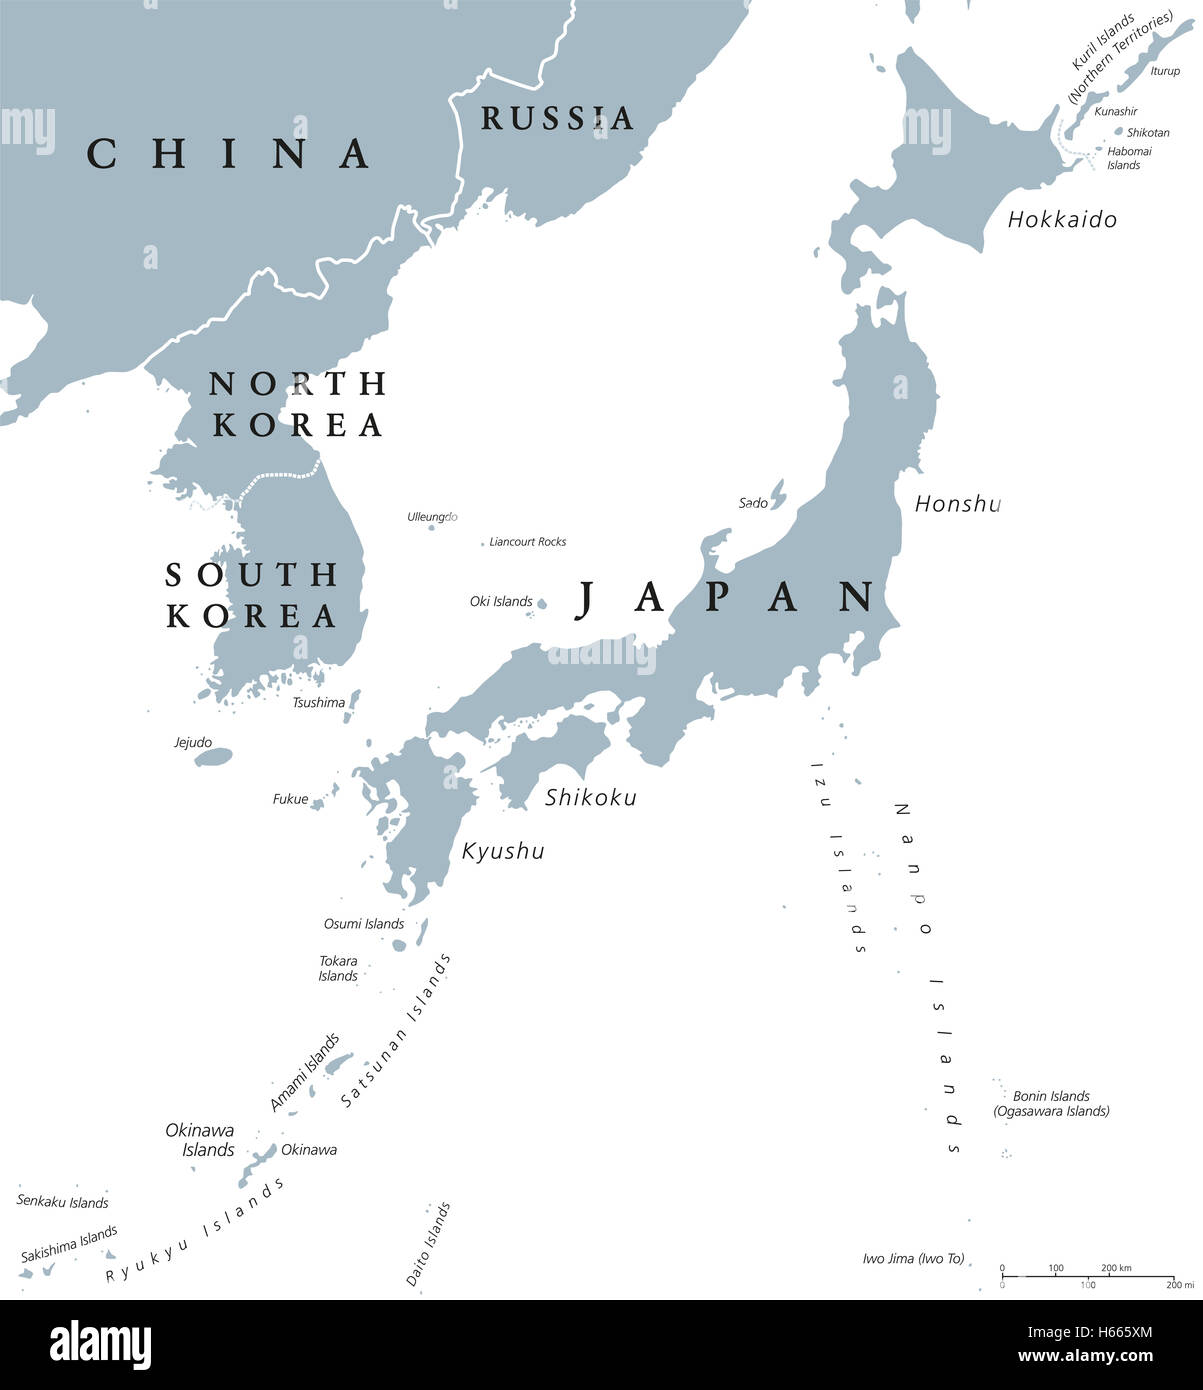 Korean peninsula and Japan countries political map with national